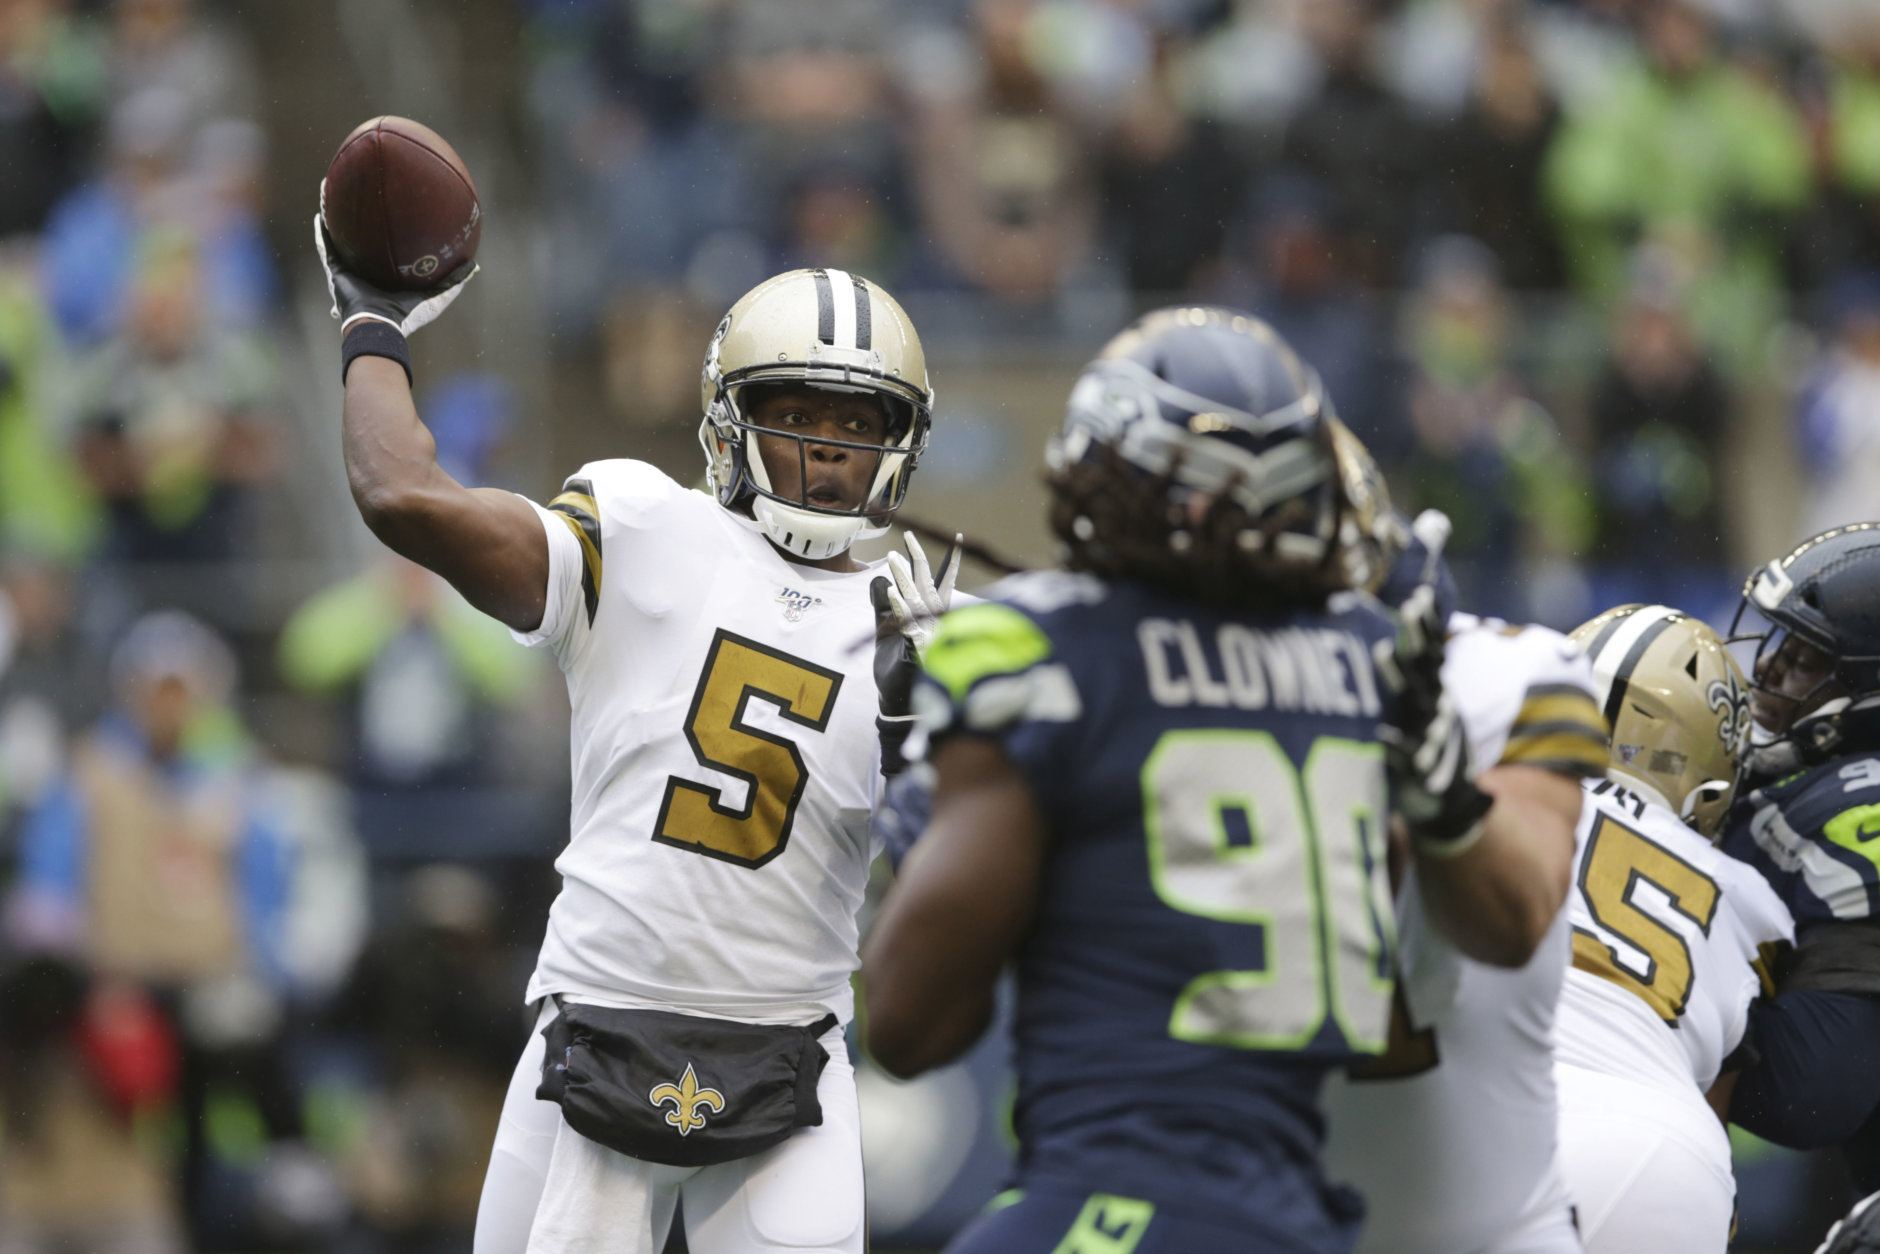 <p><b><i>Saints 33</i></b><br /> <b><i>Seahawks 27</i></b></p> <p>Unless you&#8217;re a Seattle fan, it&#8217;s hard not to feel good for Teddy Bridgewater. The backup to Drew Brees won his first start since Week 17 … in 2015, well before his career-altering knee injury. If he can keep playing like this, the Saints can hang with anybody.</p>